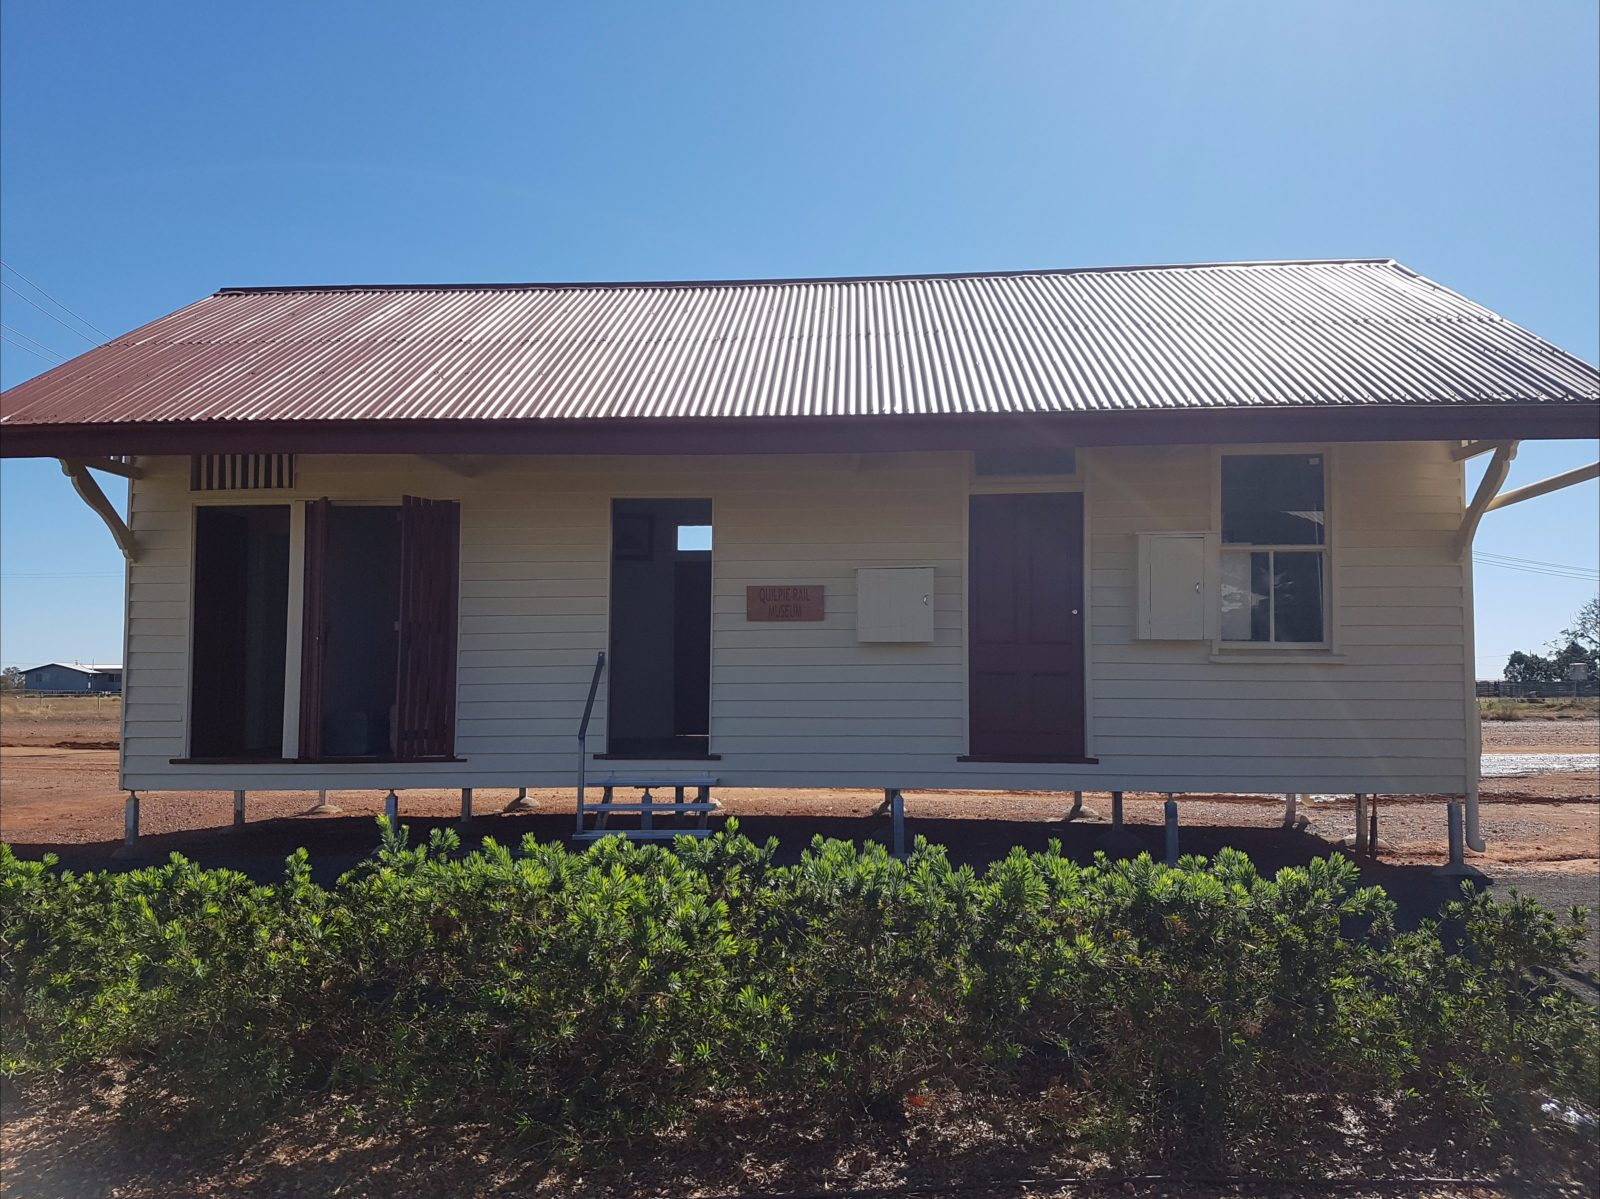 This building is the original Cheepie Railway Station, relocataed in Quilpie February 2017